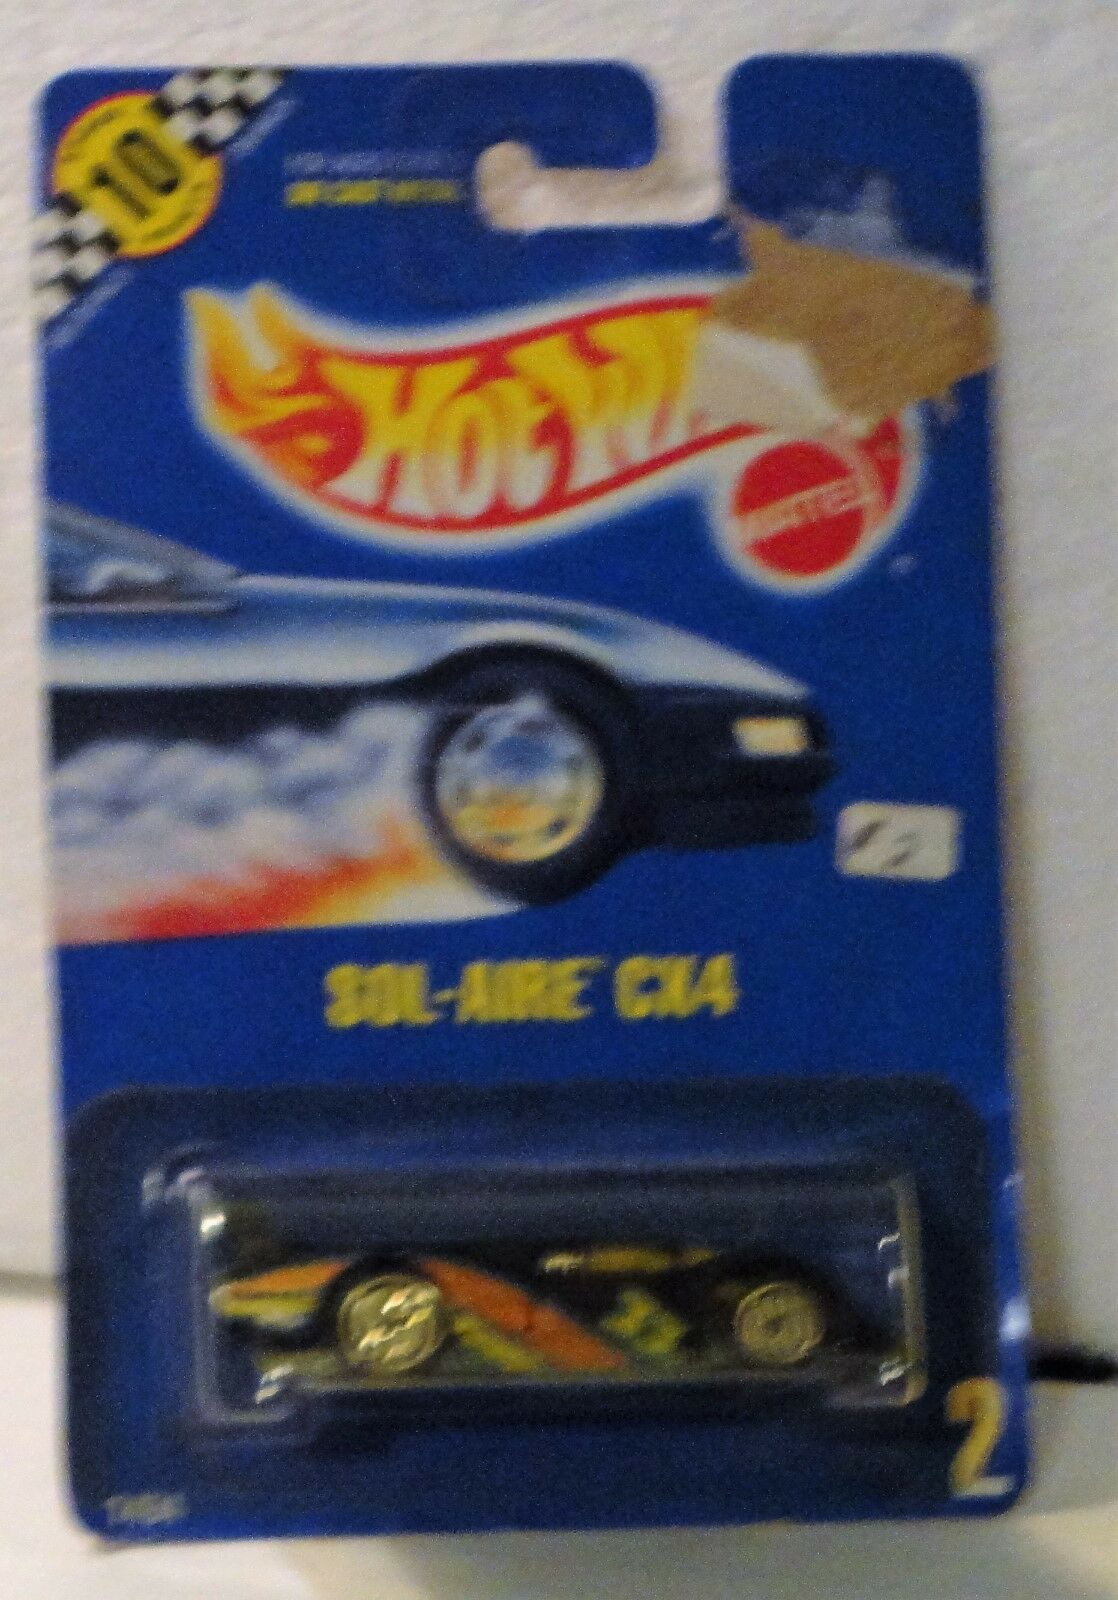 Hot Wheels 1991 Sol-Aire CX4  gold U H on bluee card Rare